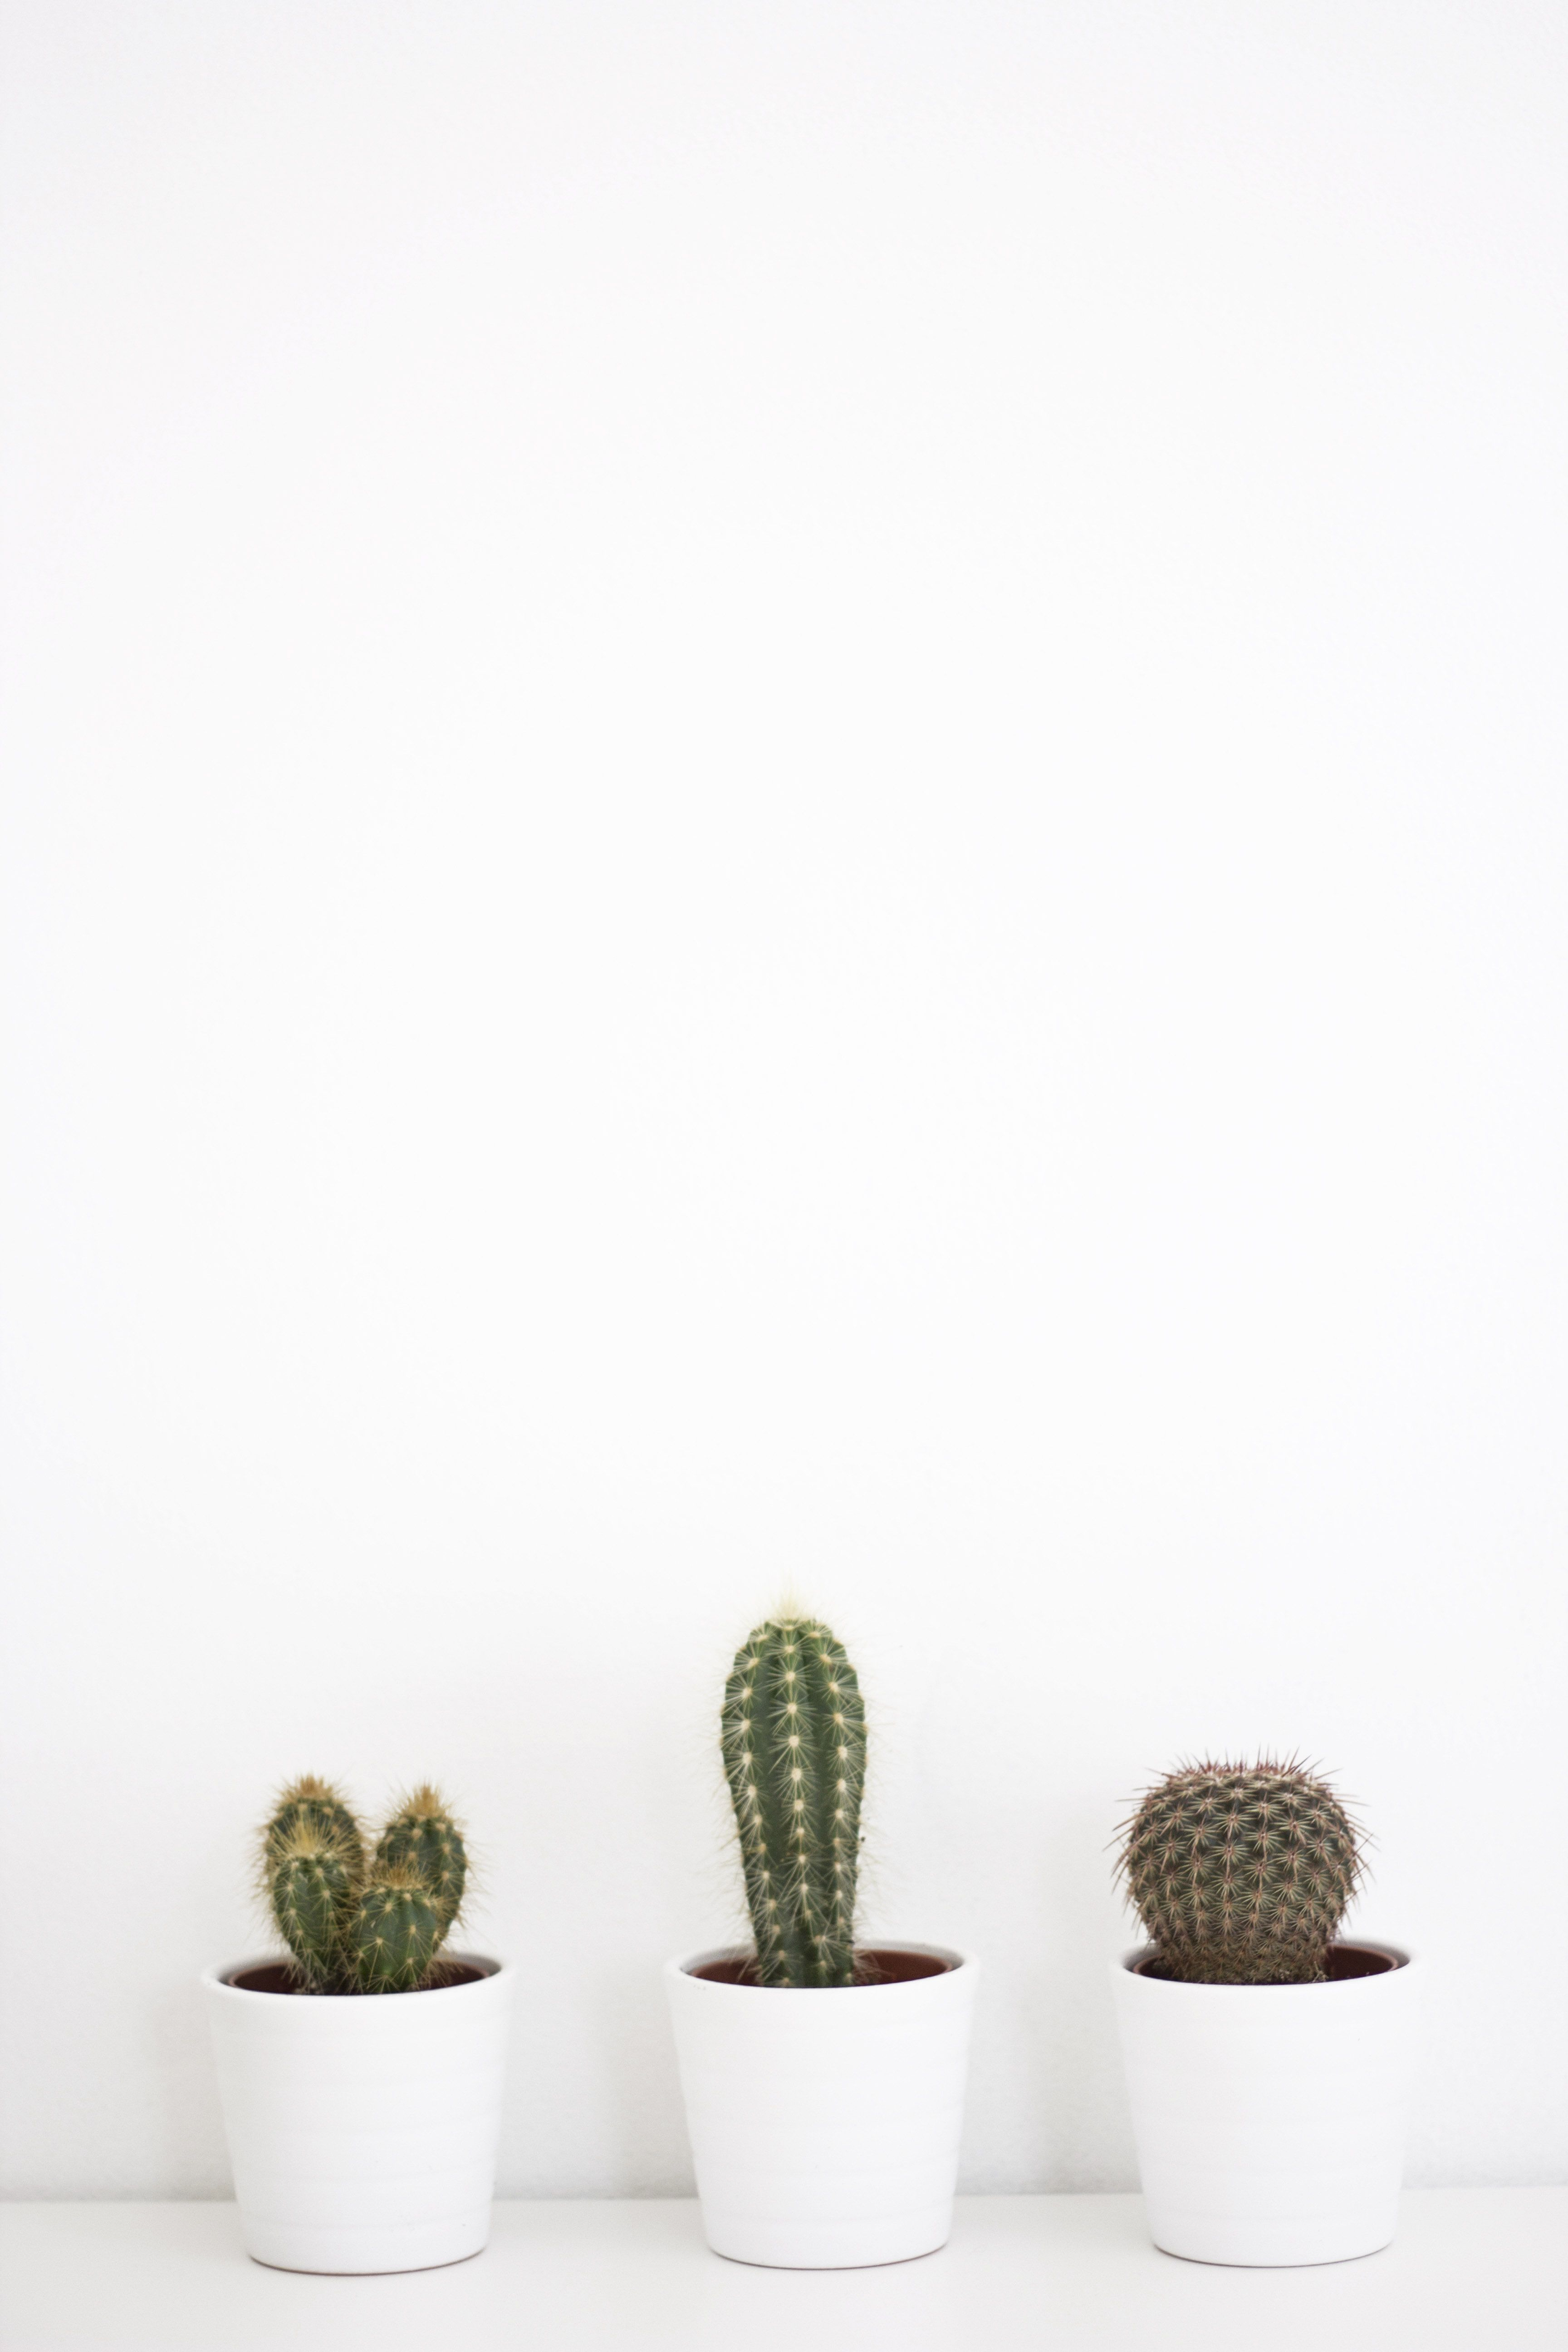 Aesthetic Cactus Wallpapers On Wallpaperdog